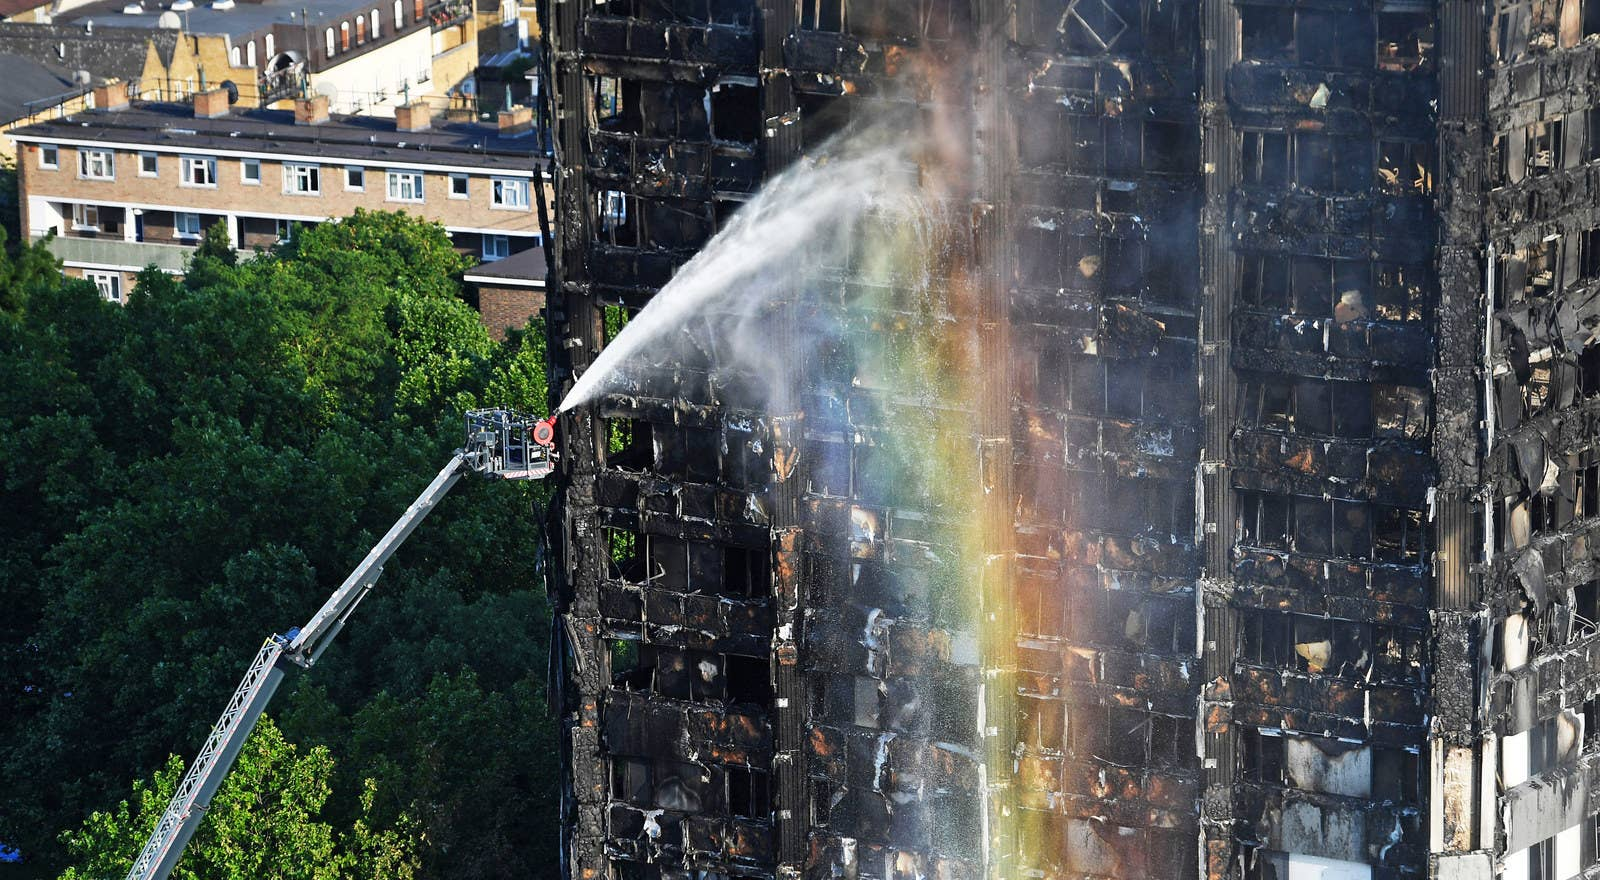 In Pictures The Aftermath Of Grenfell Tower Fire